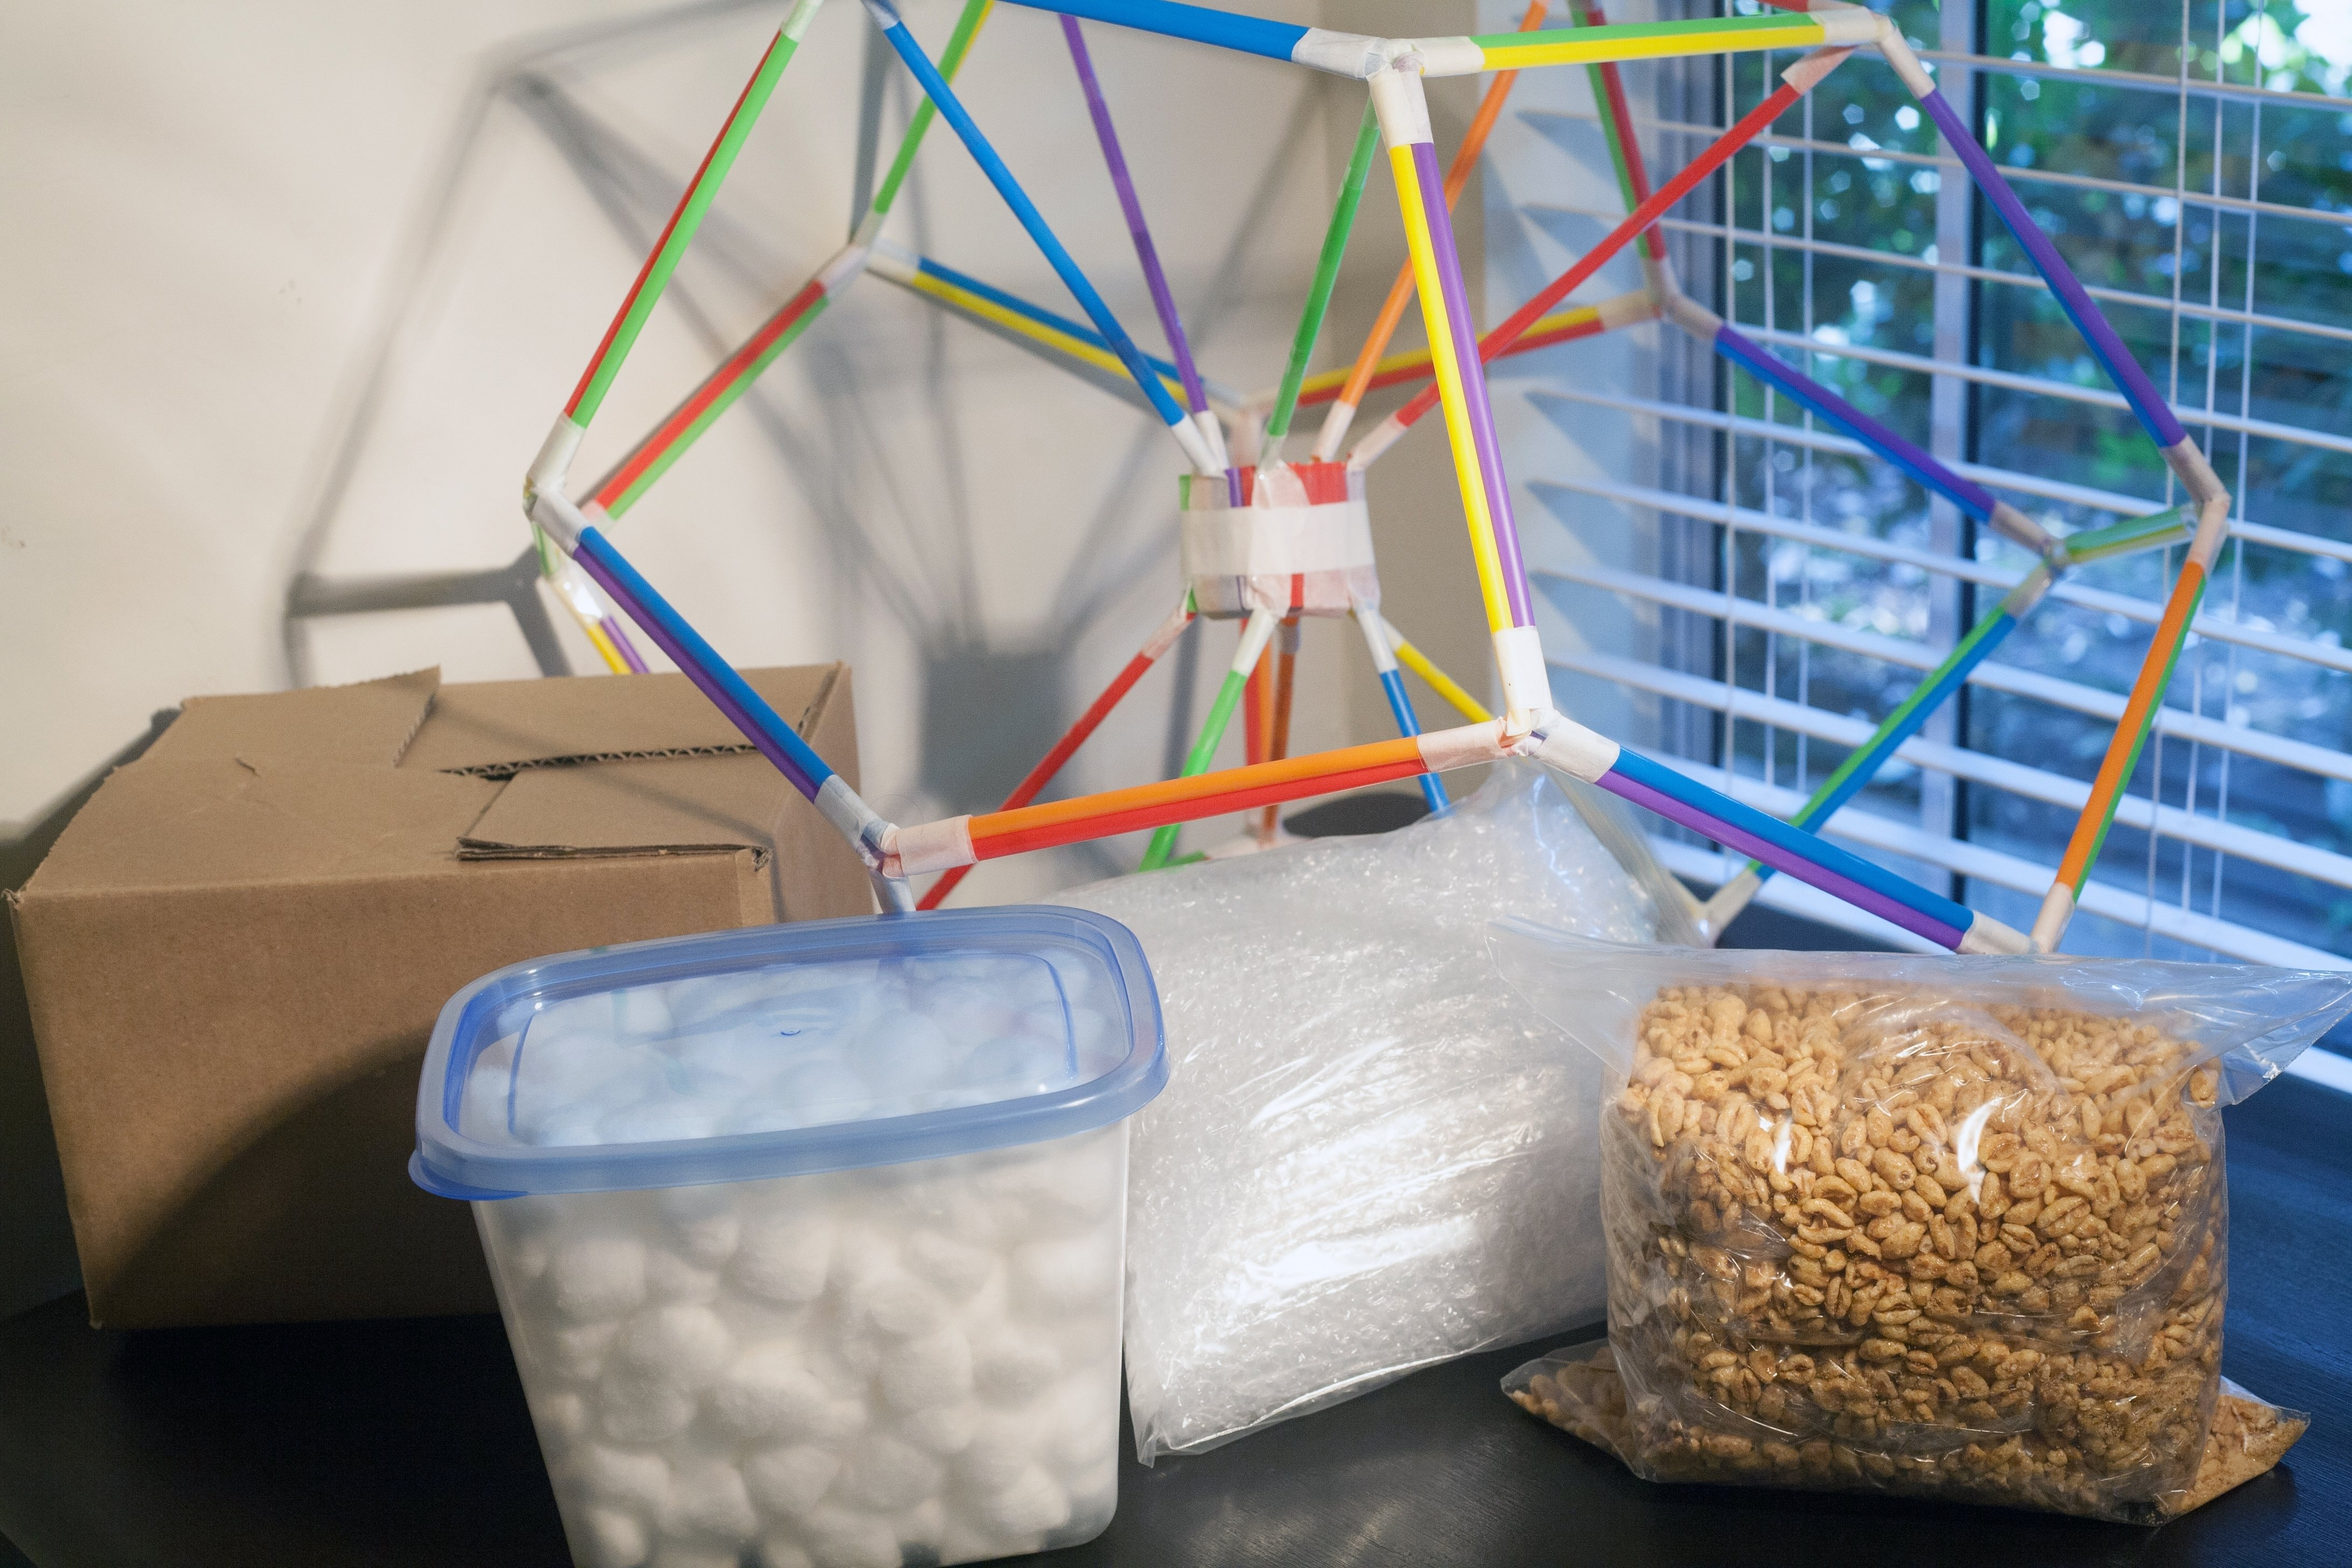 10 Perfect Easy Egg Drop Project Ideas best 25 egg drop project ideas on pinterest egg drop egg buggy 2021